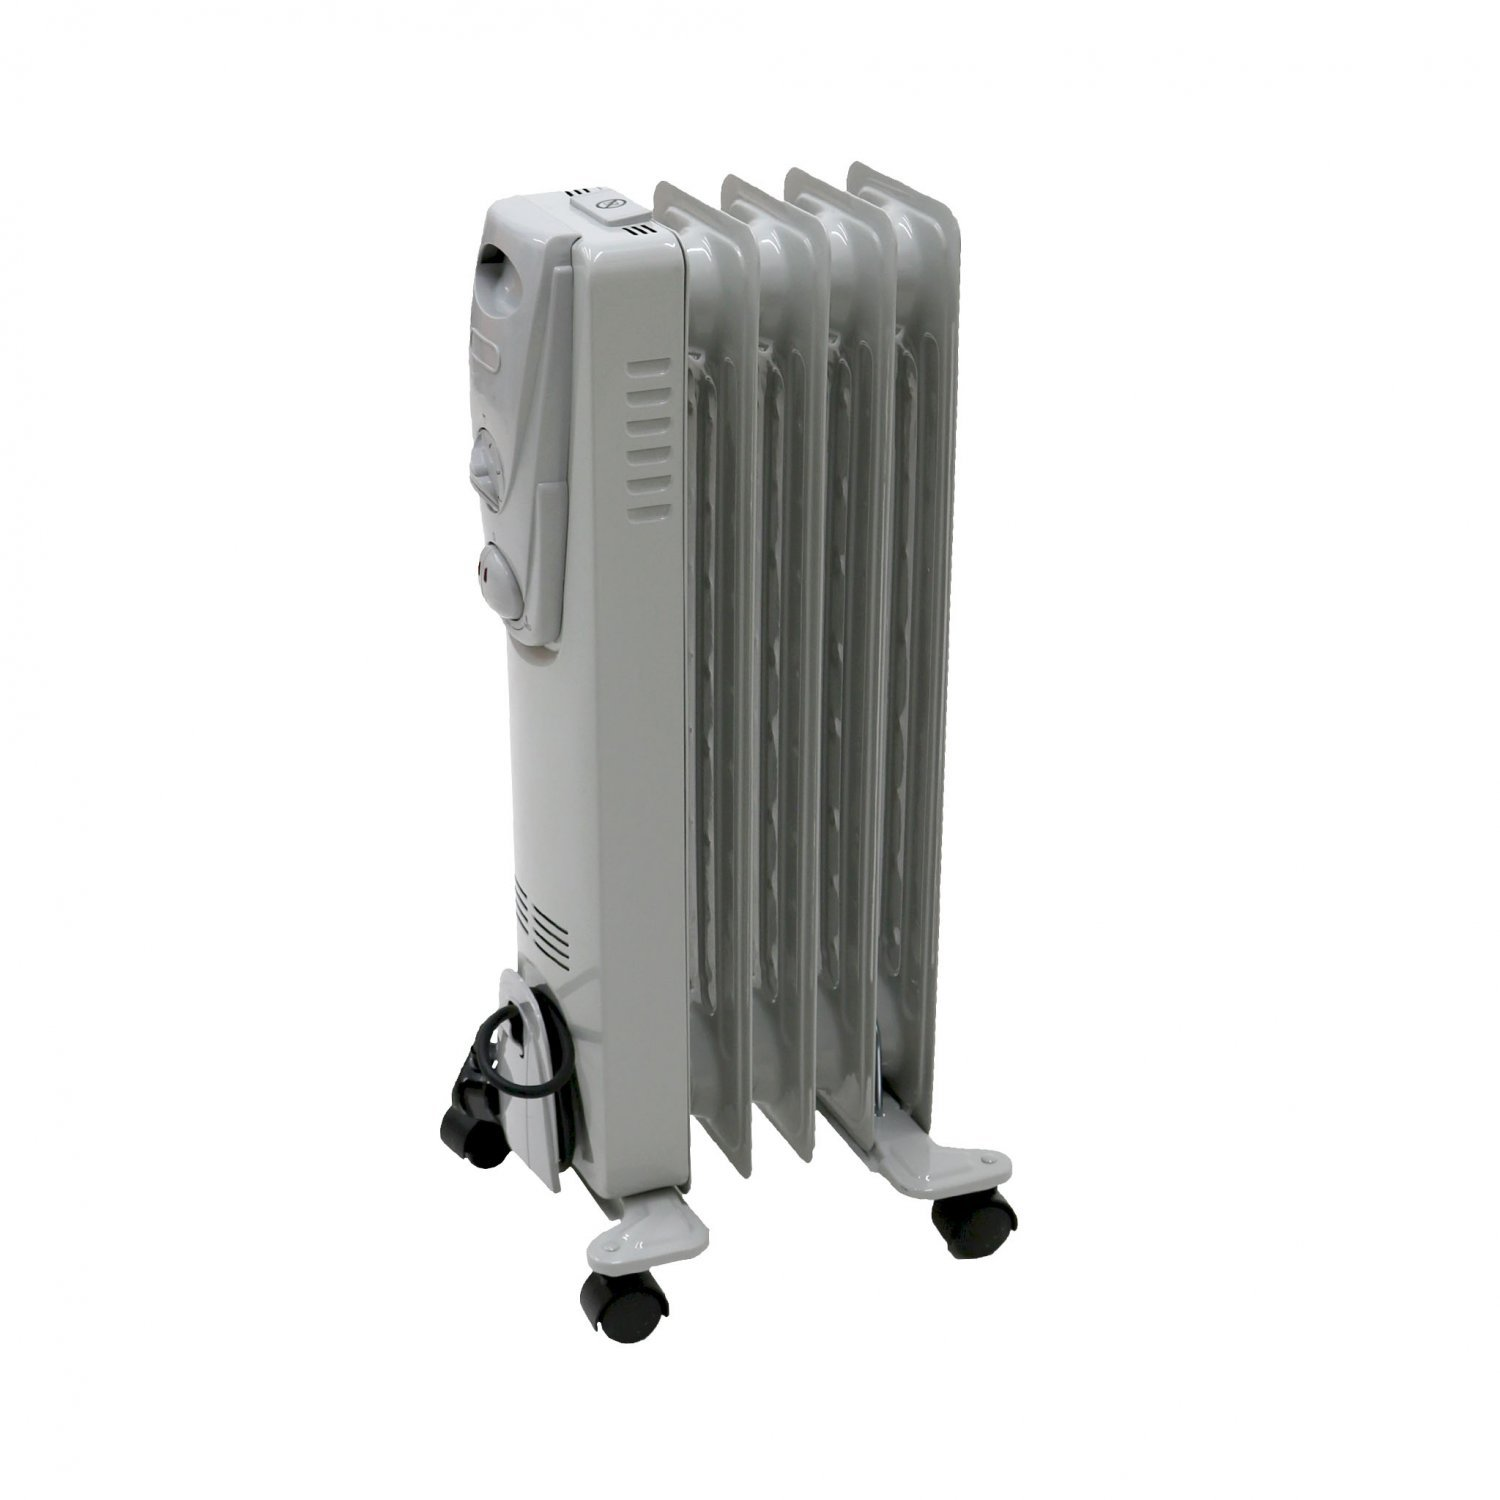 1000w 5 fin portable oil filled radiator electric heater. Black Bedroom Furniture Sets. Home Design Ideas